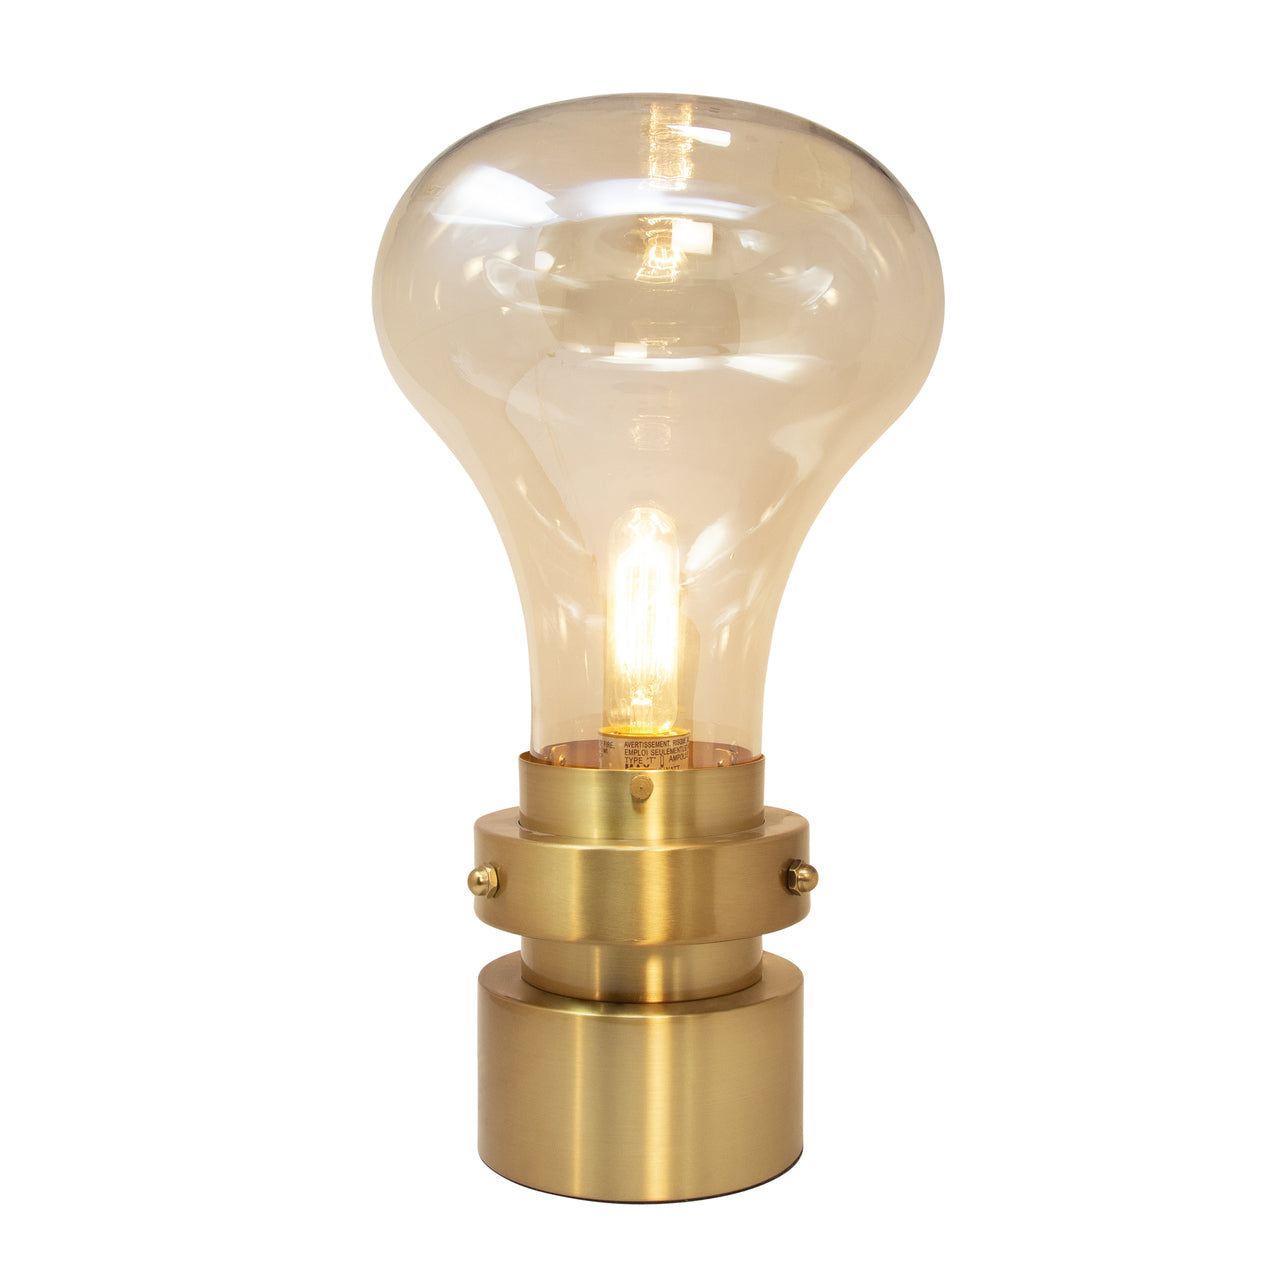 "GLASS 18"" LIGHT BULB TABLE LAMP, GOLD - Casa Muebles"